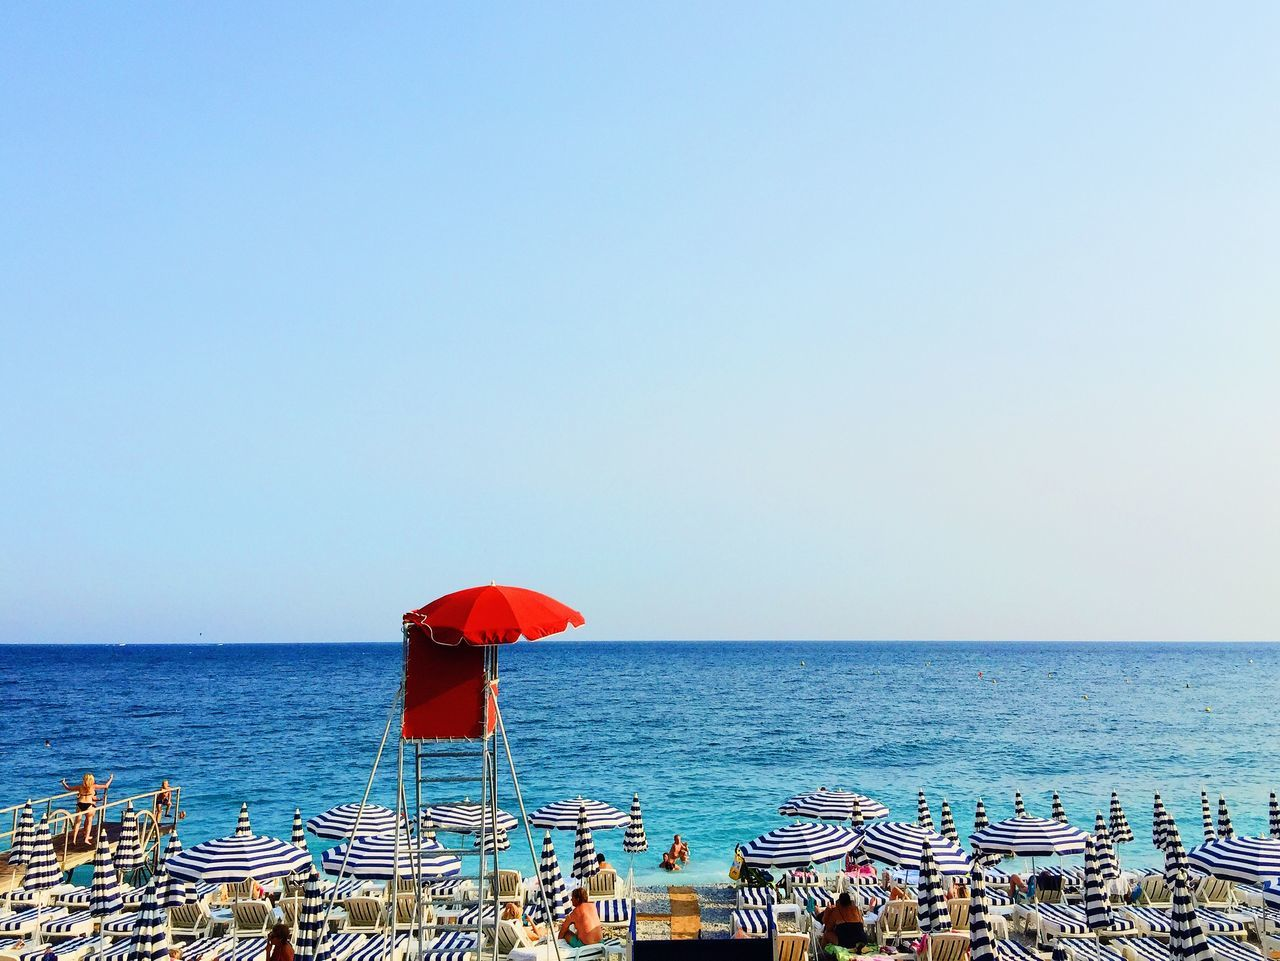 [ Azur ] This blue is my kind of blue. Indian summer coming. Côte D'Azur South Blue Sea And Sky Beach Life Is A Beach Summer Summertime Summer Views Azur Into The Blue Skyblue Blue Sky Bluesky Blue Sea Blue Wave Neighborhood Map Live For The Story